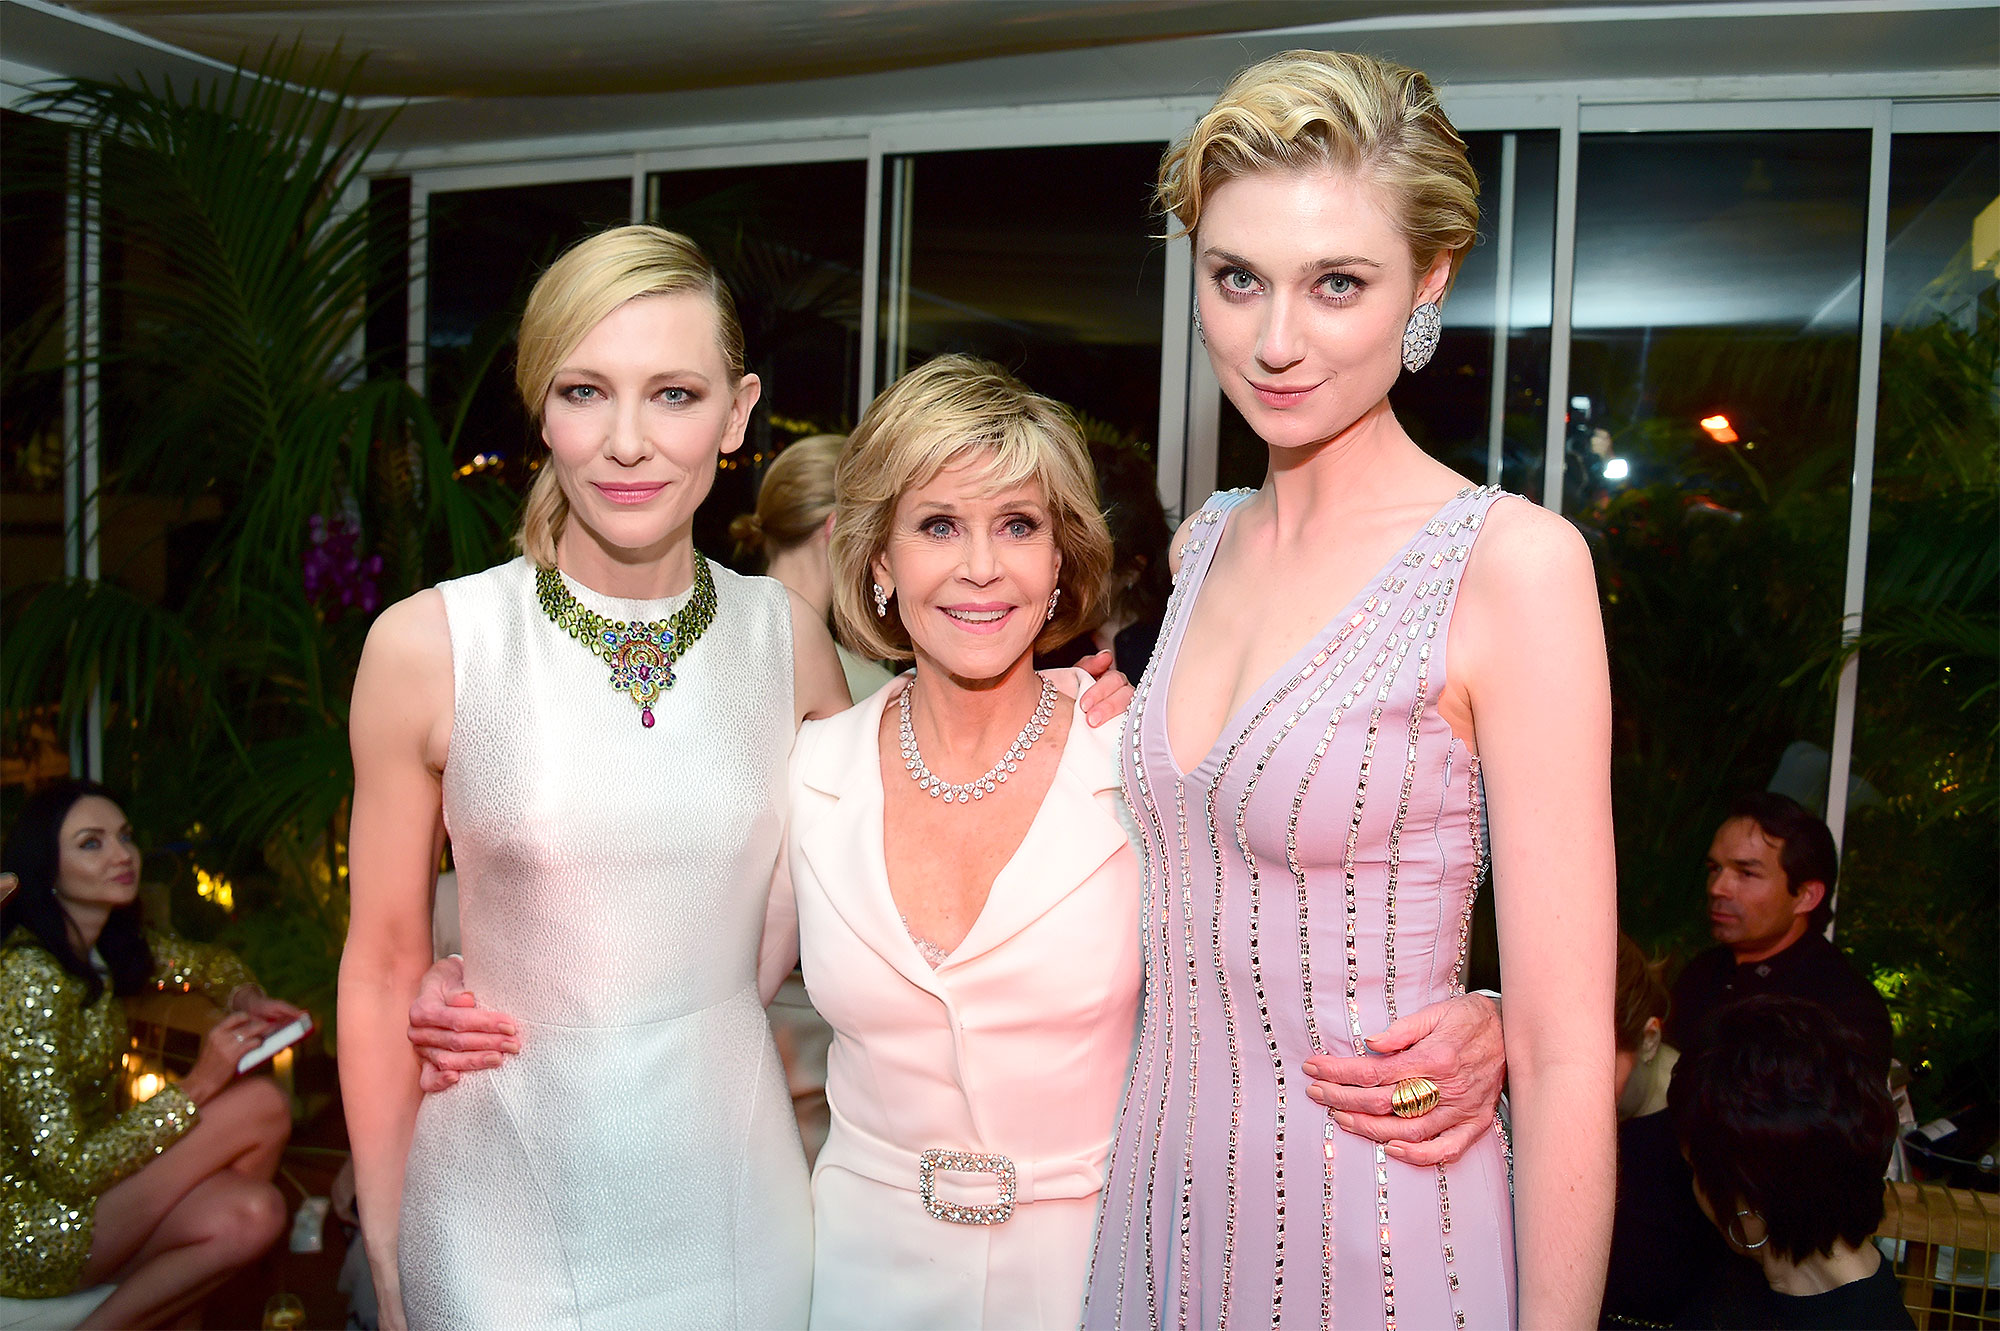 Trophee Chopard Party - The 71st Annual Cannes Film Festival